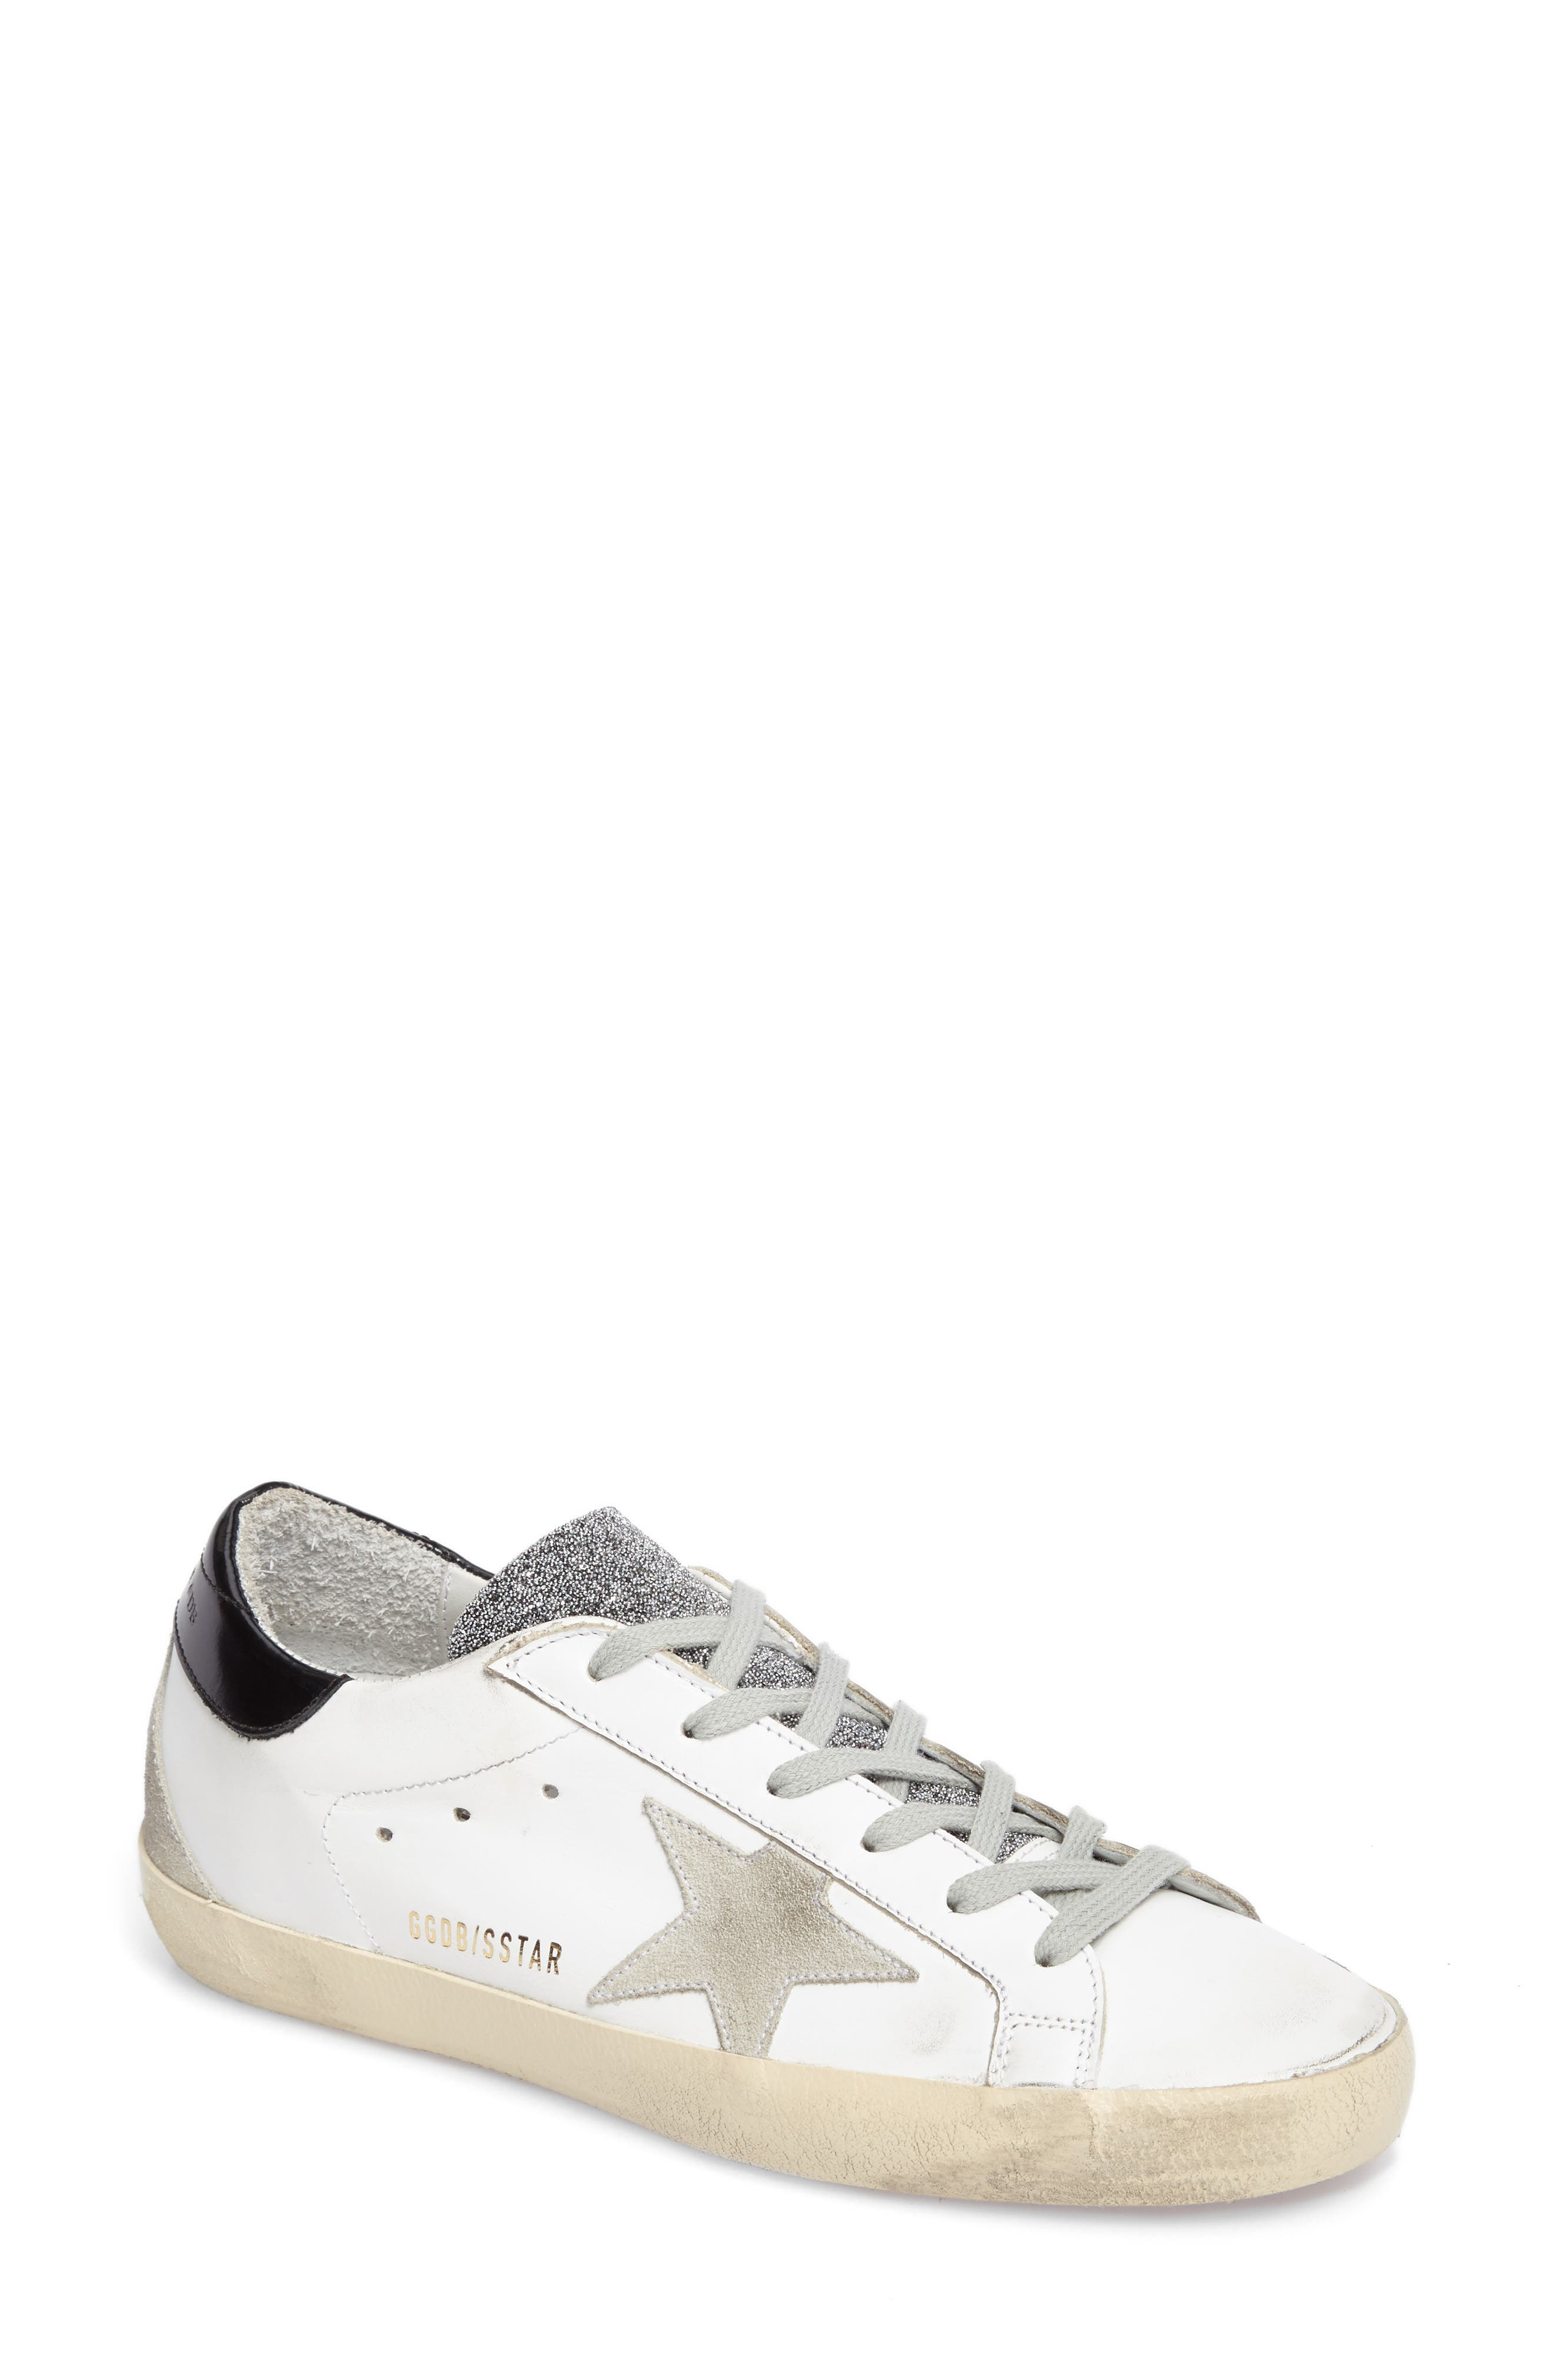 Superstar Low Top Sneaker,                             Main thumbnail 1, color,                             White